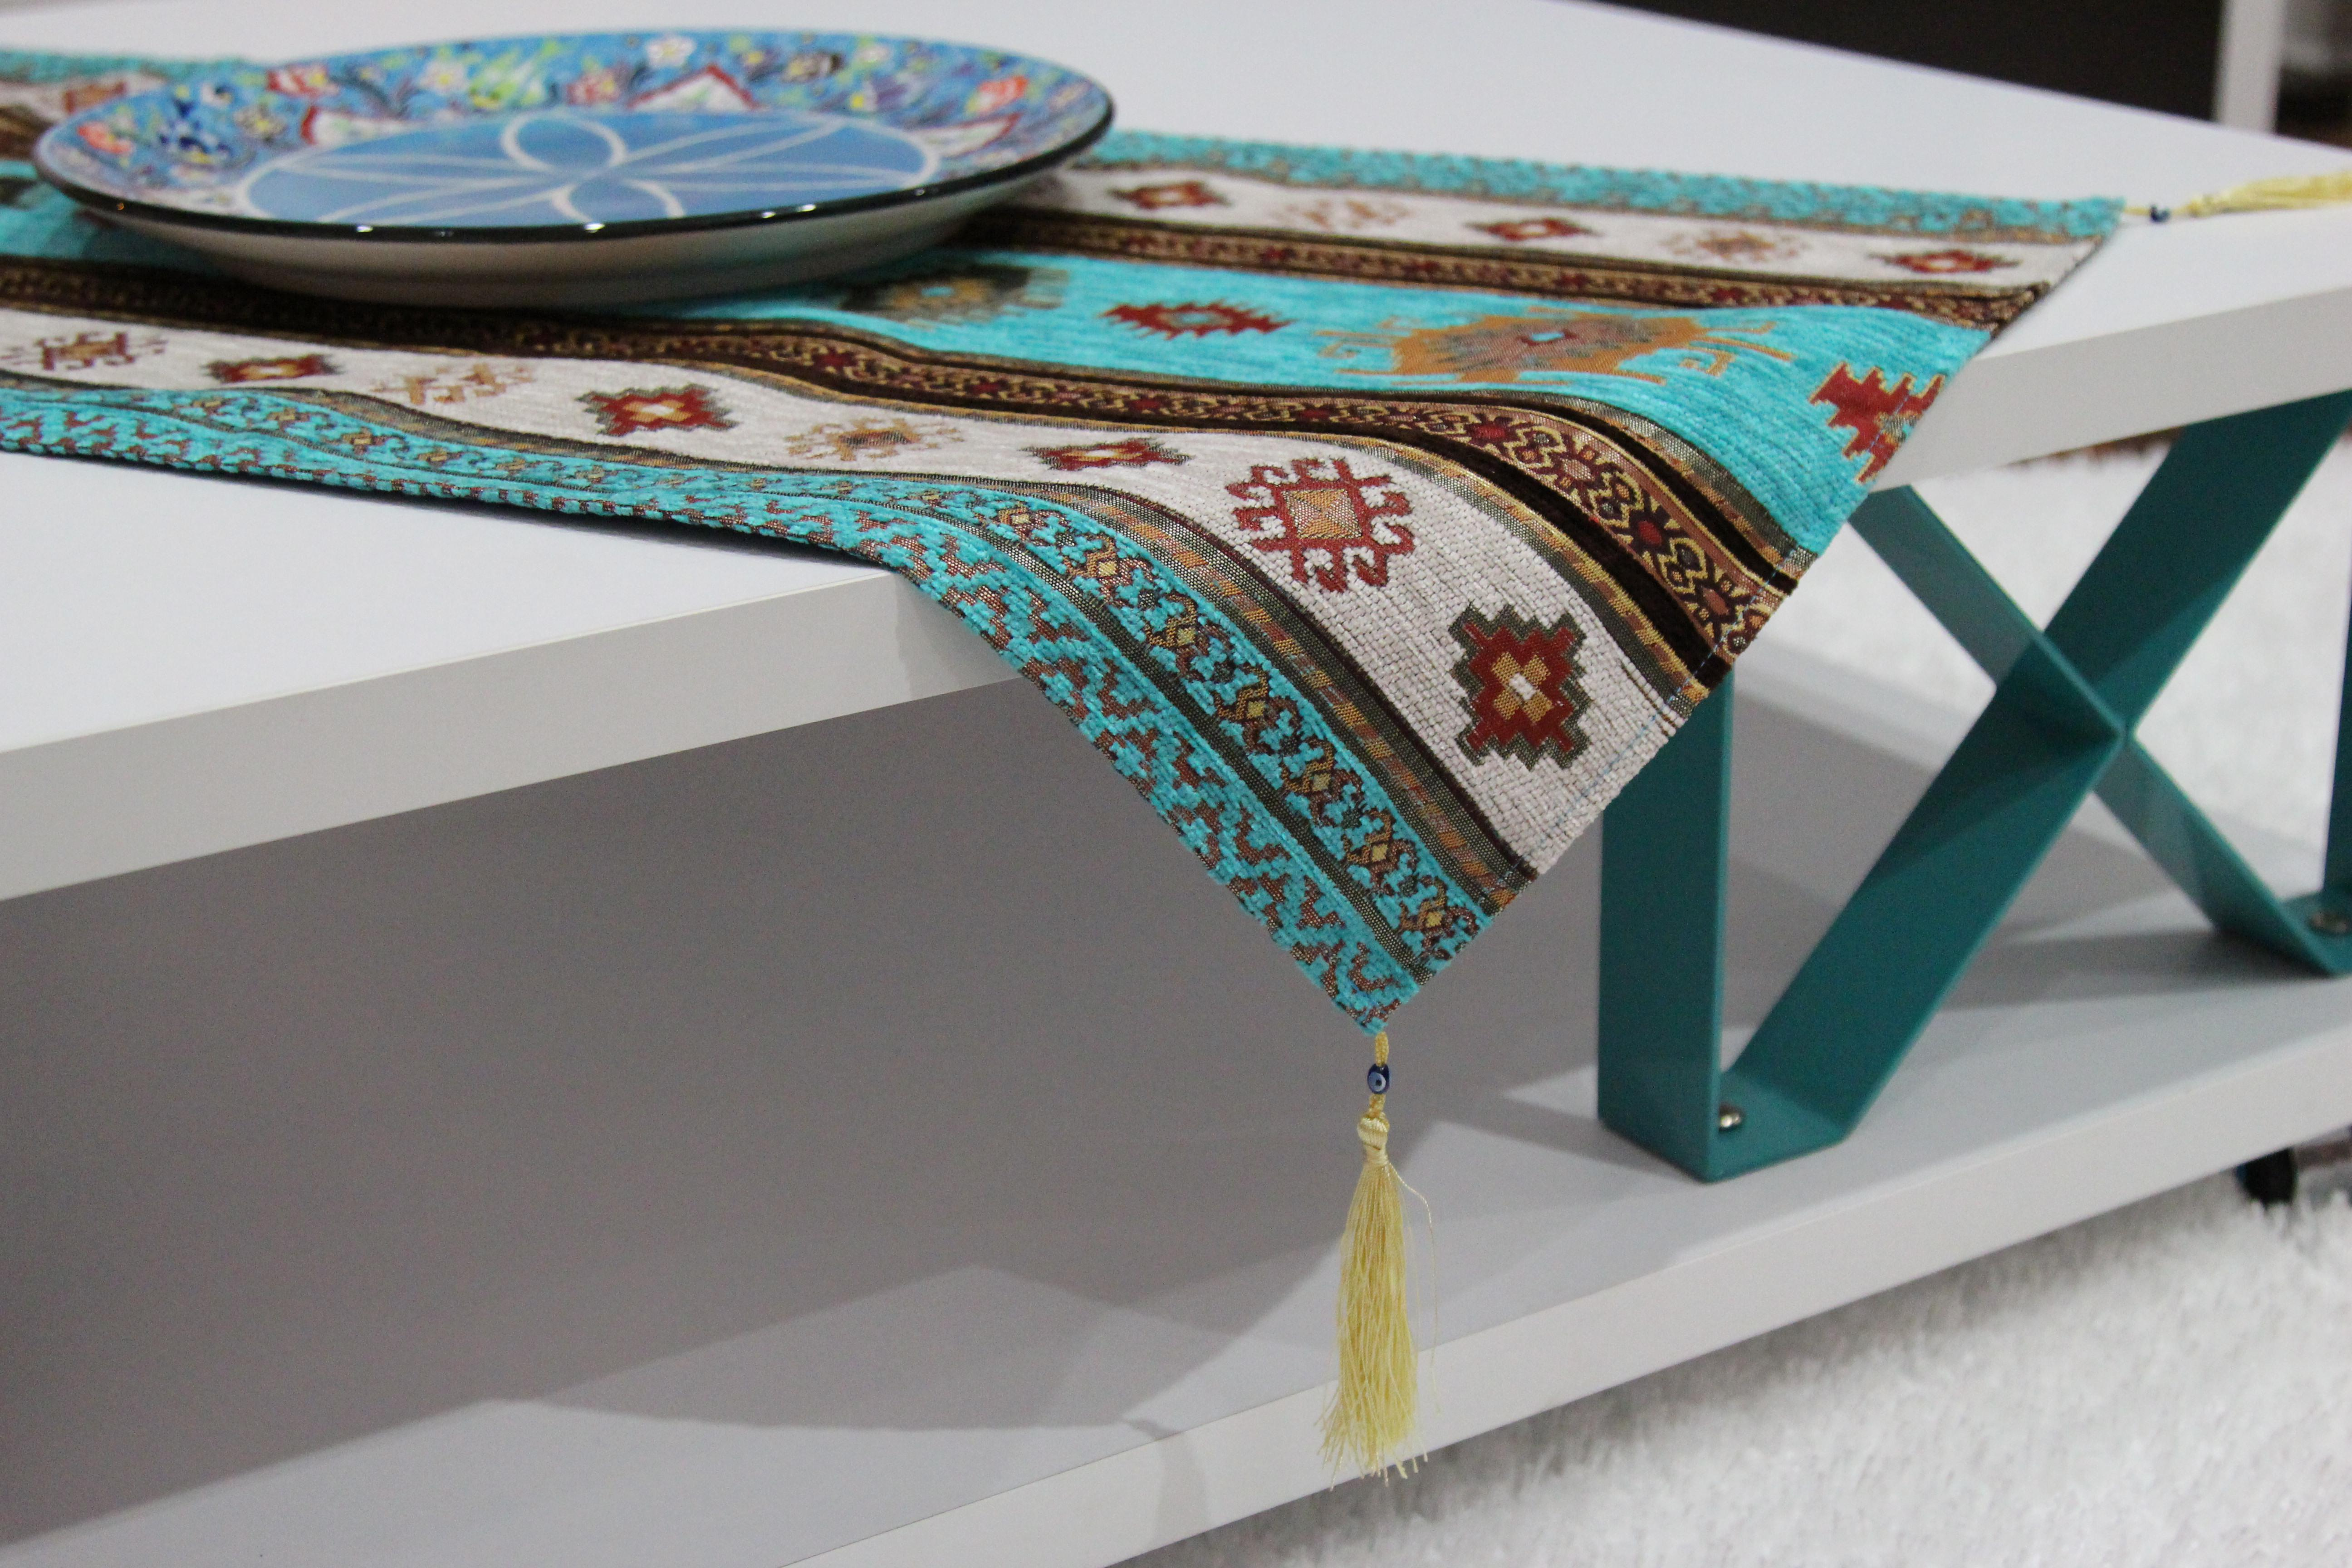 Turkish Red, Gold U0026 Turquoise Kilim Table Runner   Image 8 Of 10